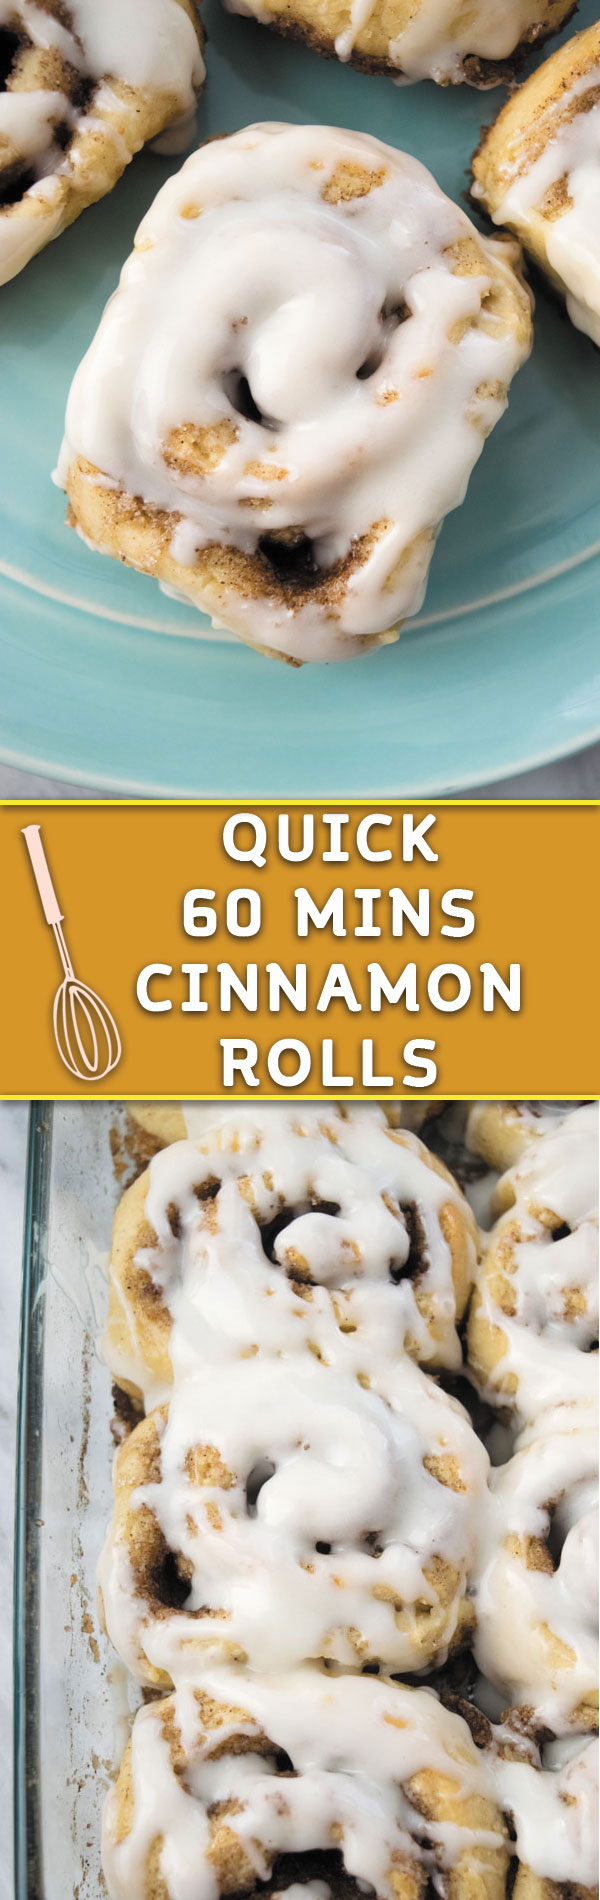 Quick 60 mins Cinnamon Rolls - Now you can have bakery style cinnamon rolls at home in no time! Just 60 mins is all you need to make from scratch cinnamon rolls! Perfect breakfast treat!